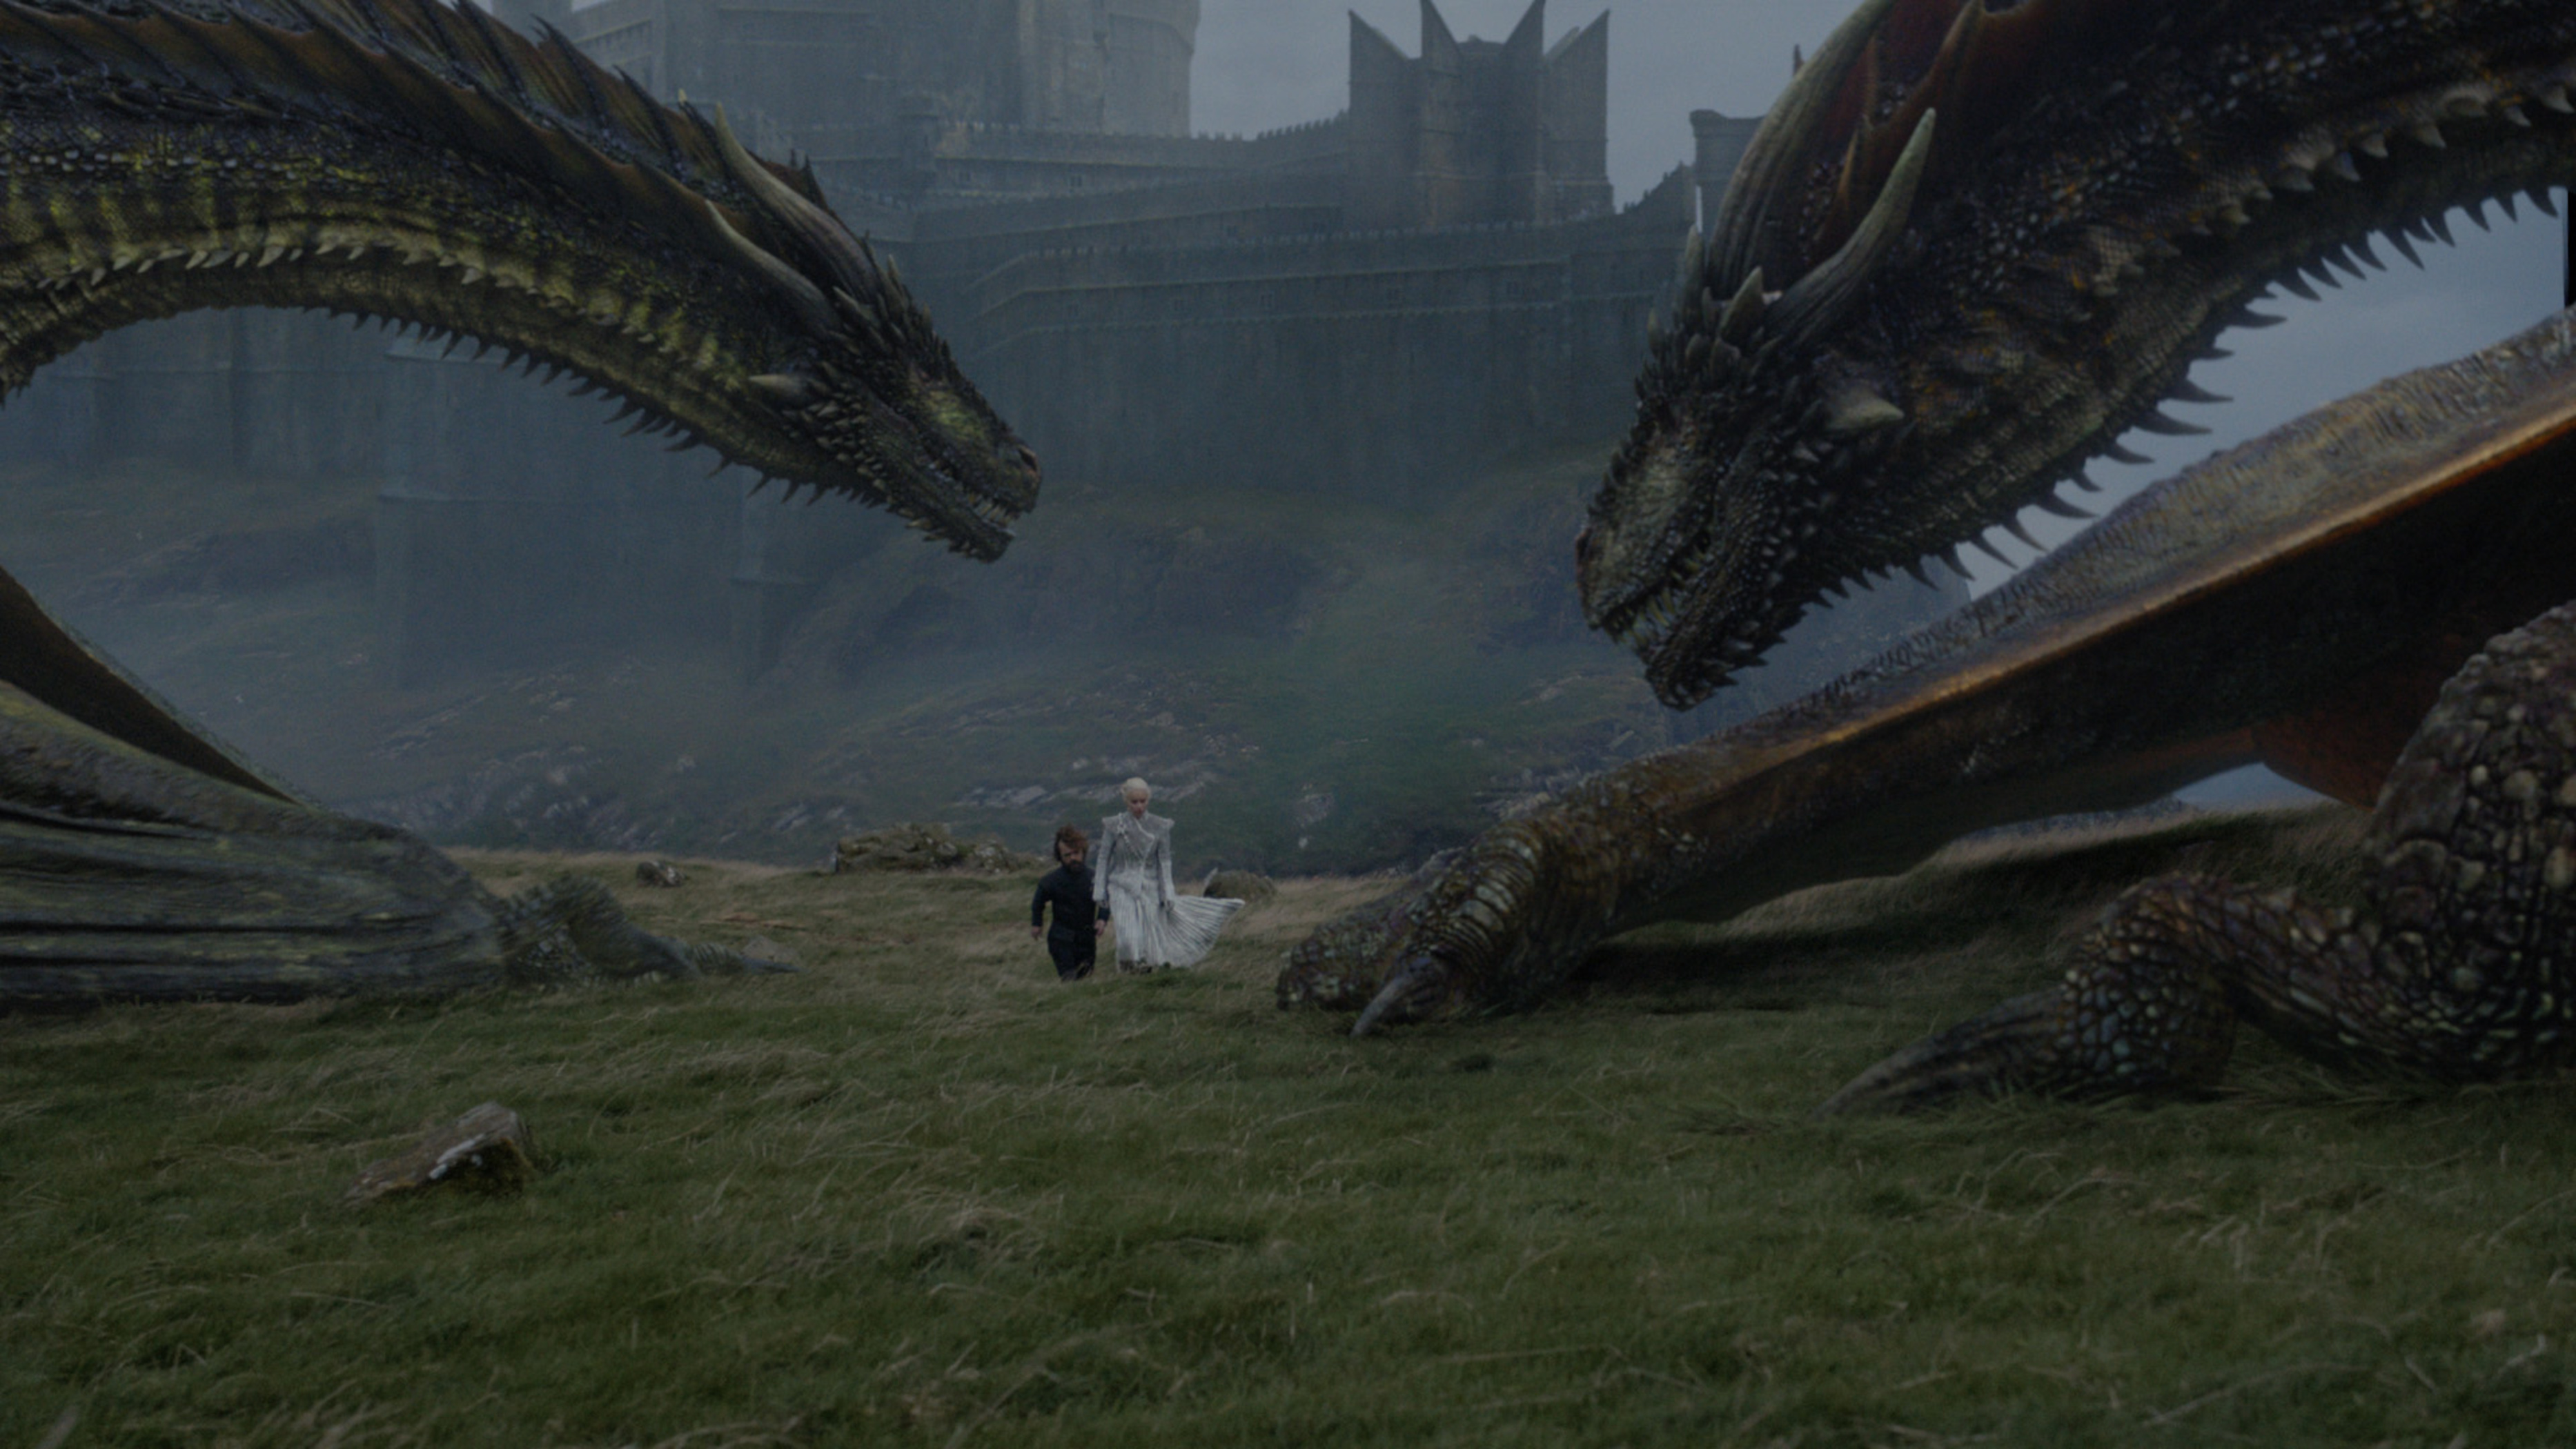 "3535817845b2327611e1d85a4aa350192adf5ade359c617bab1e49c0cd4ad3a1 Recapping Game of Thrones: Winter Comes Too Fast ""Beyond the Wall"""